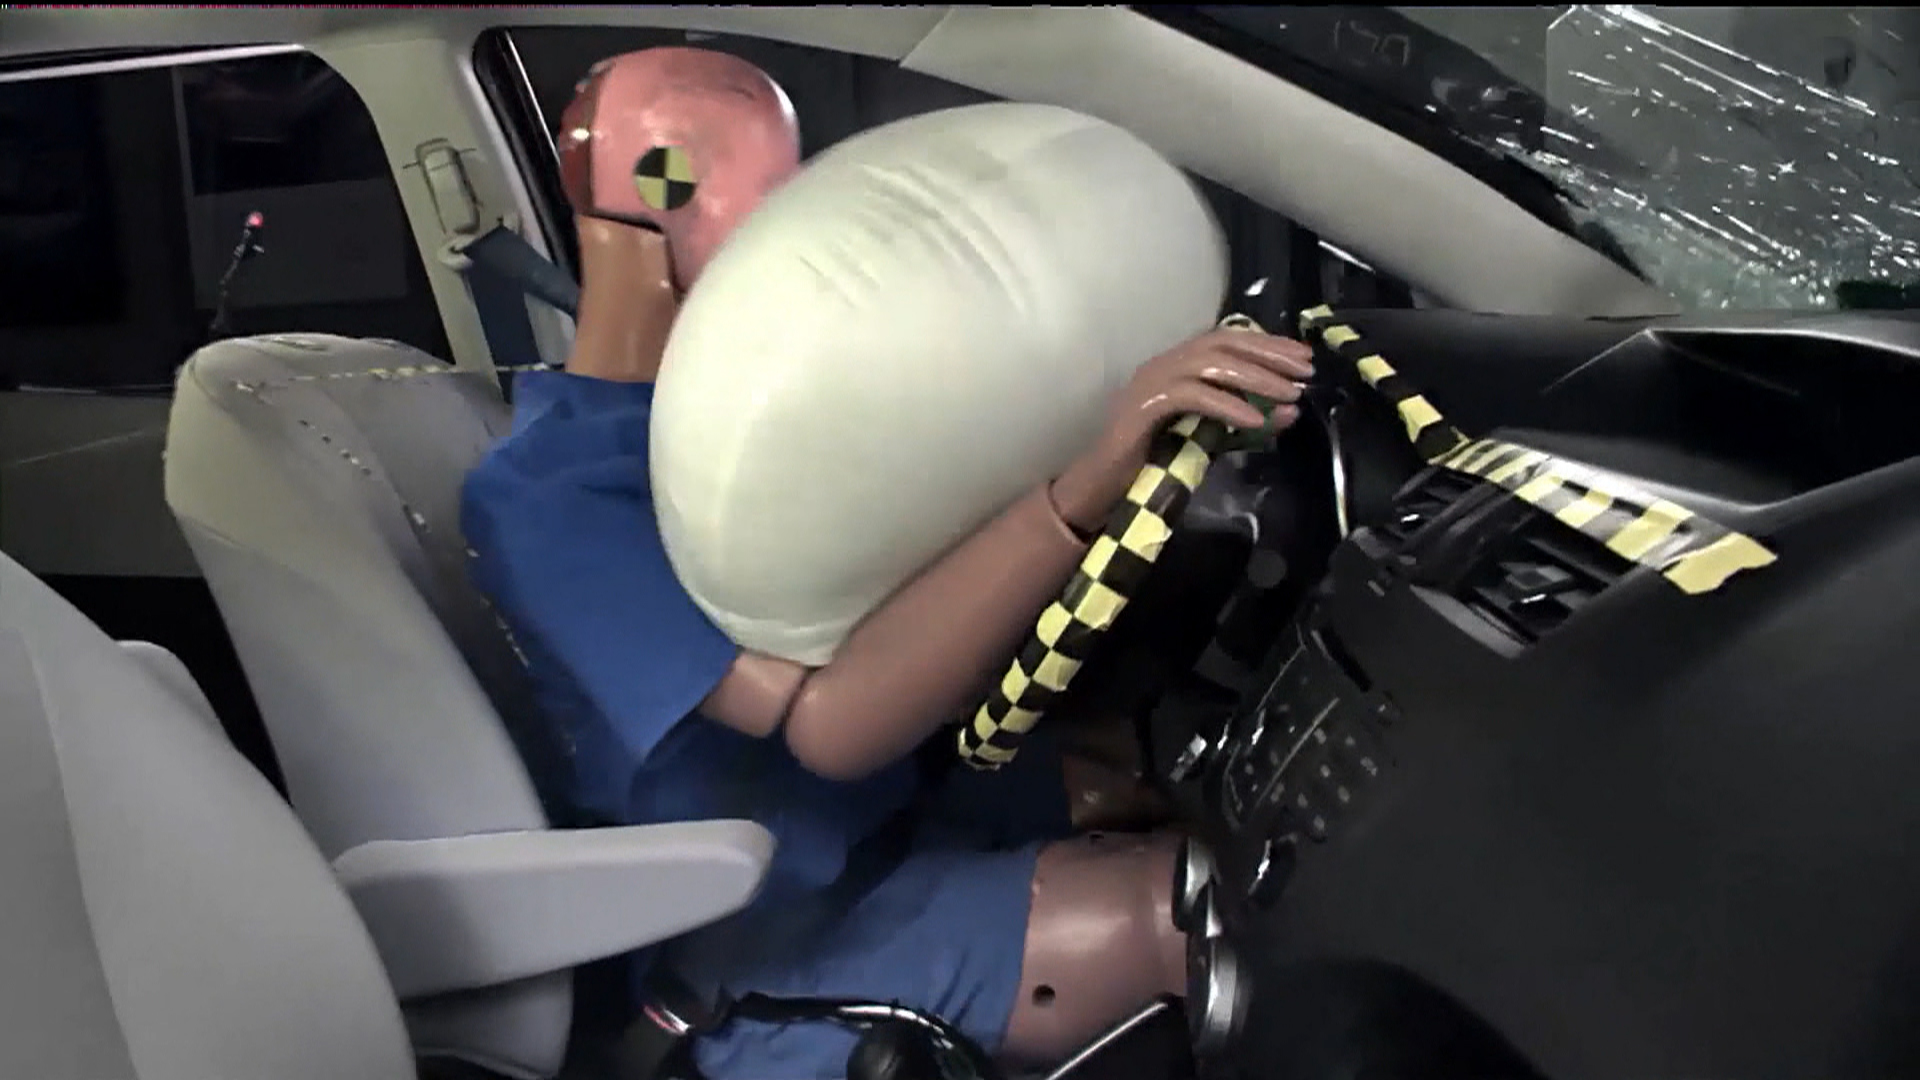 3 Steps to Take after Your Airbag Deploys